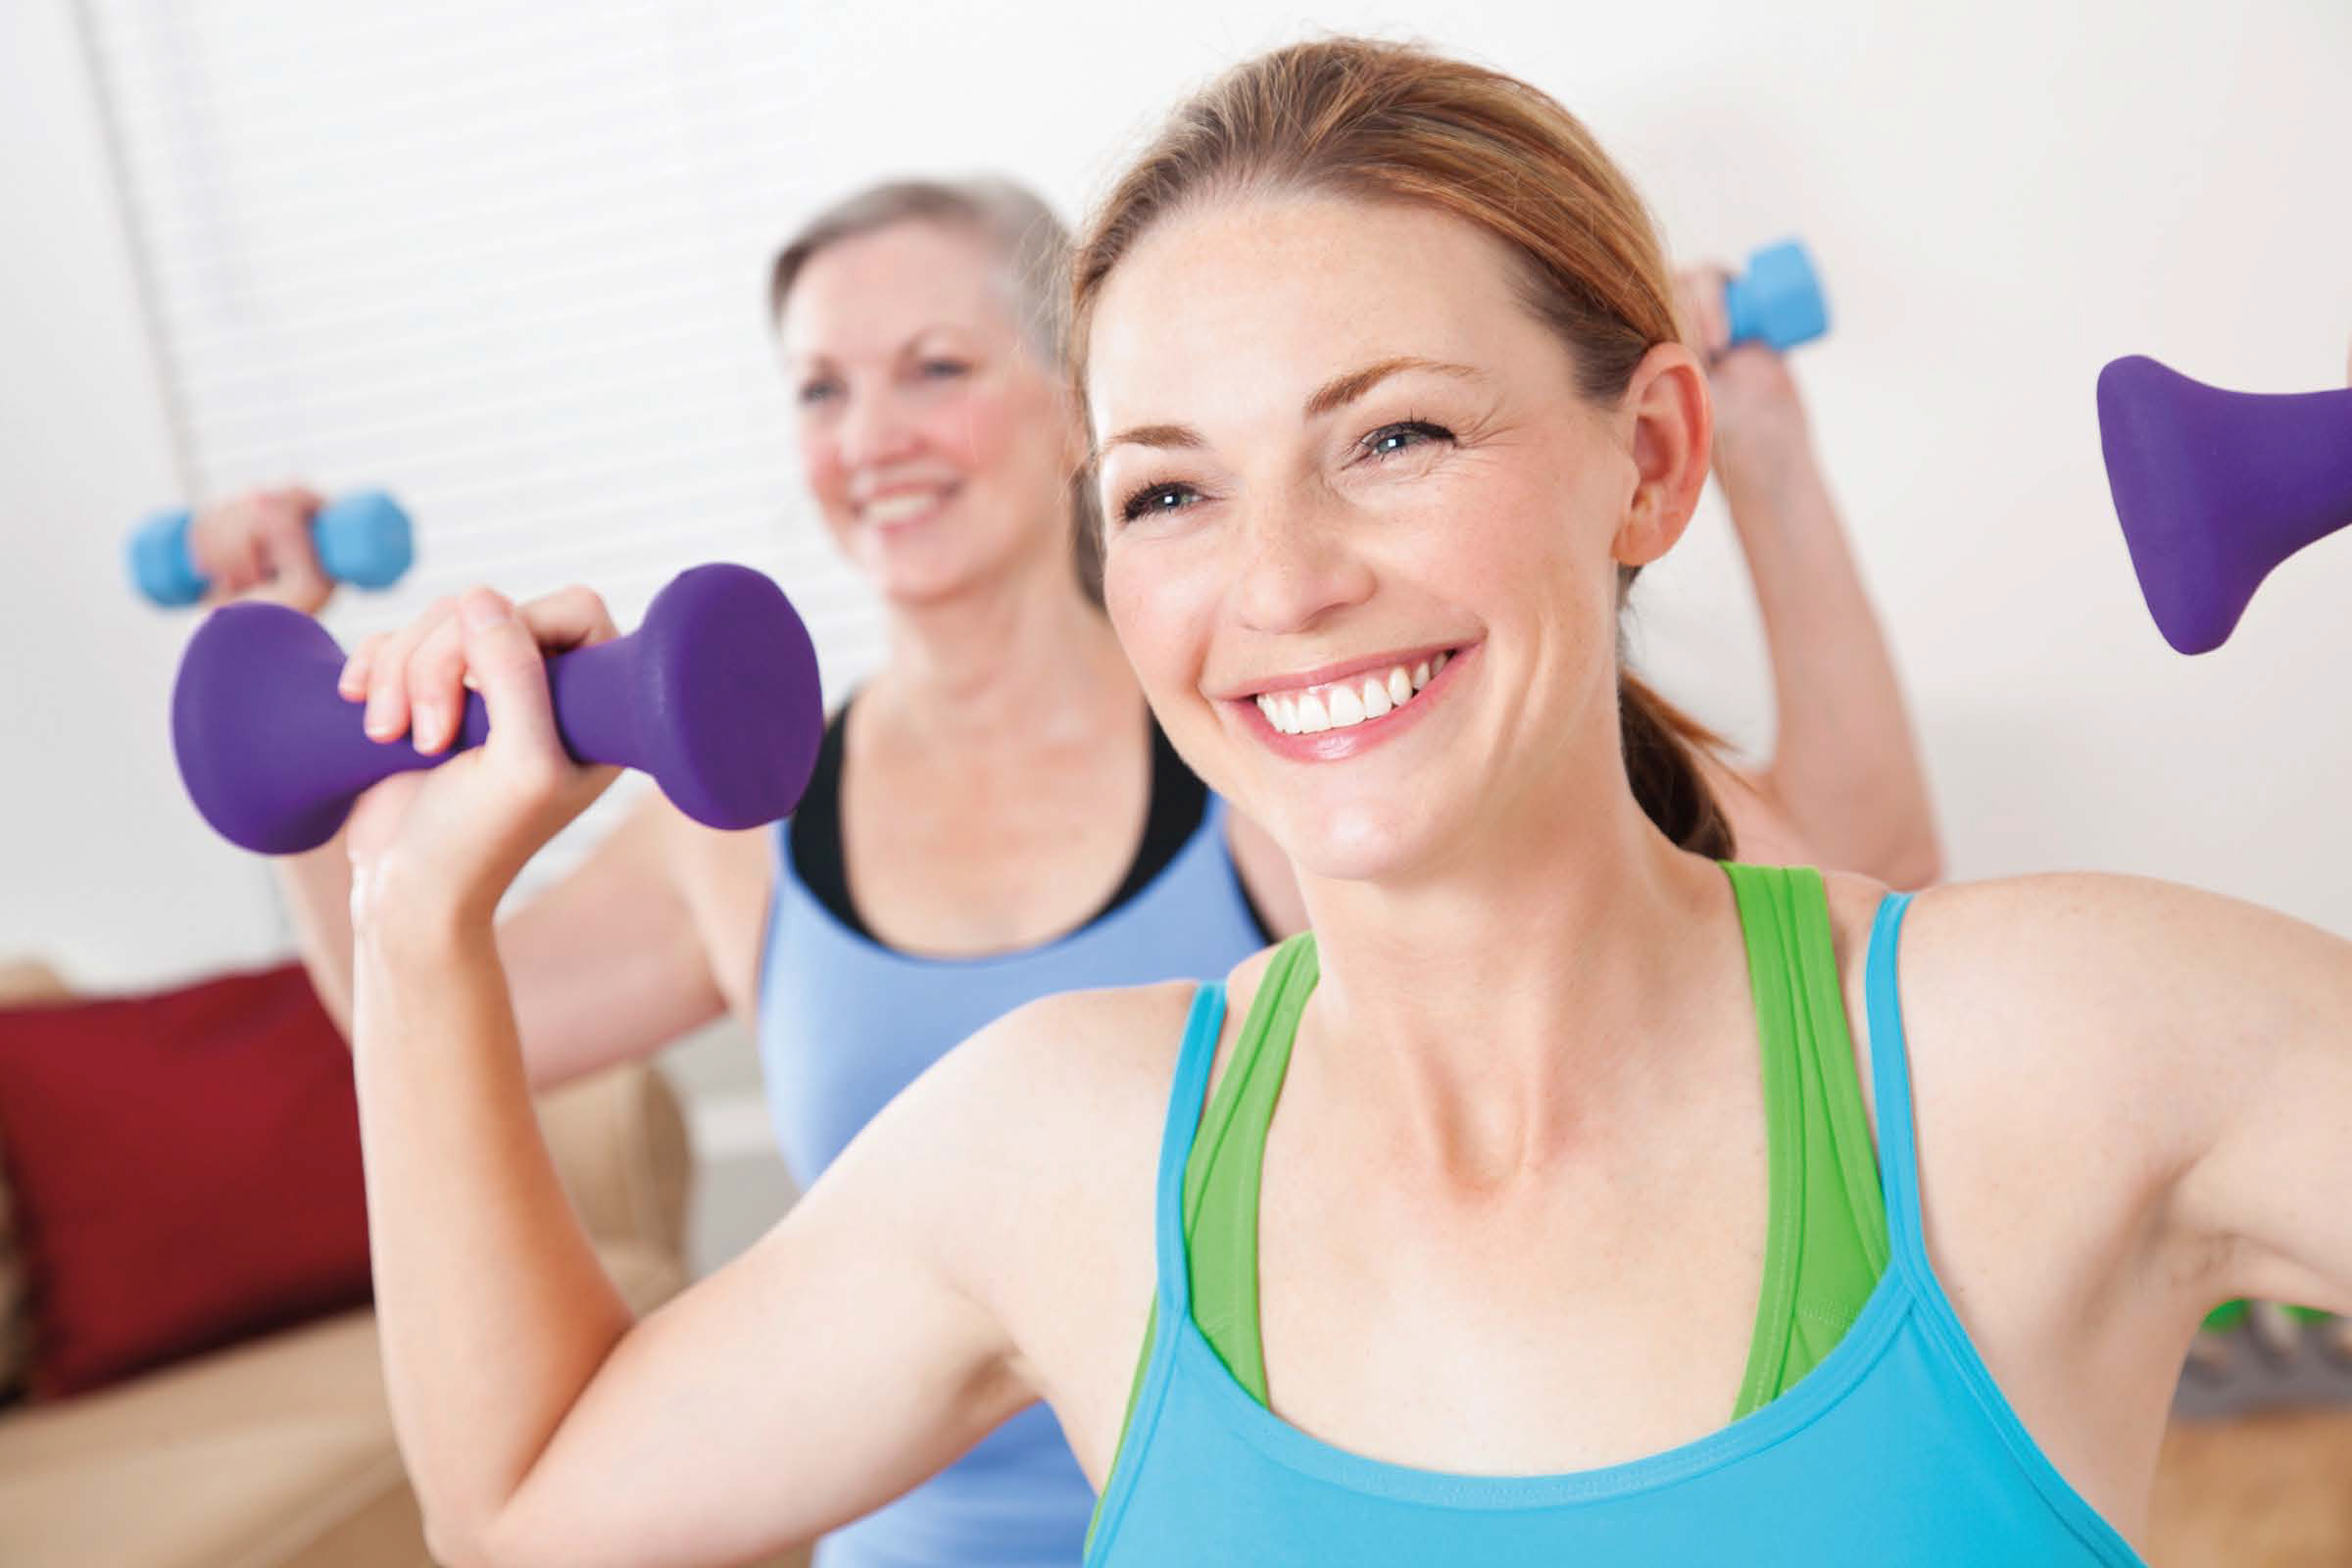 smiling middle-aged woman lifting hand weights in an exercise class